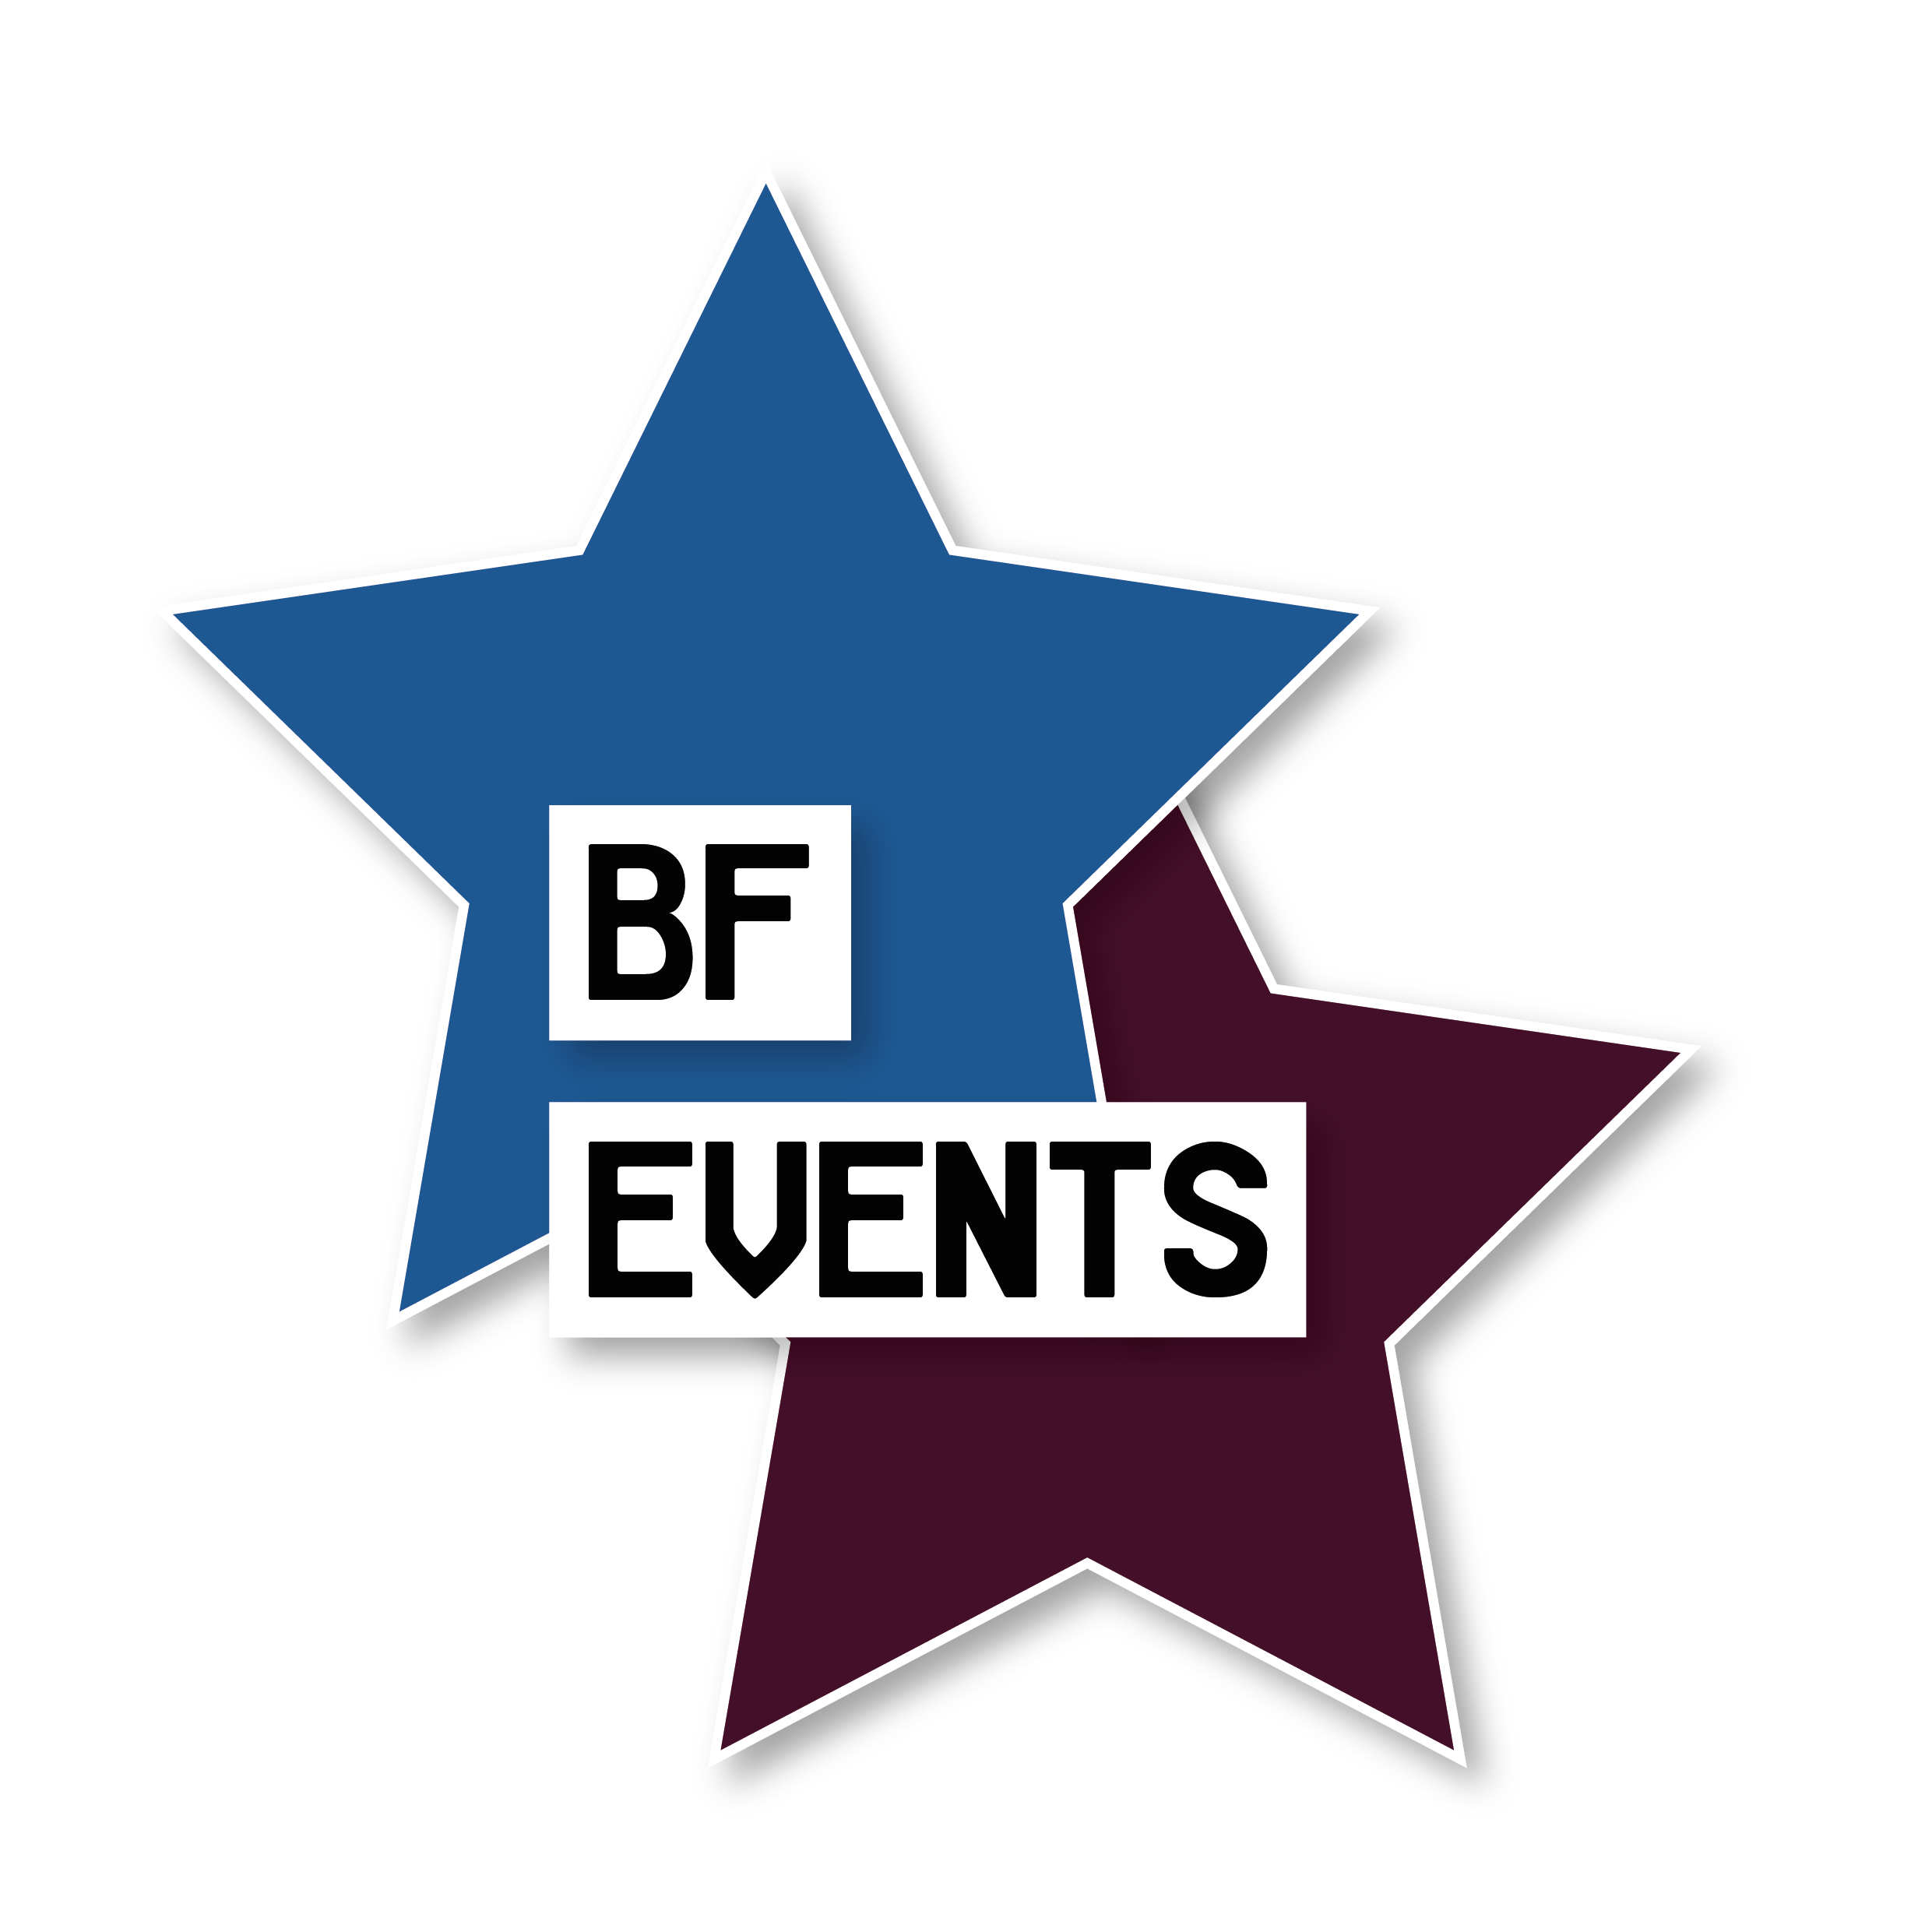 Bf Events